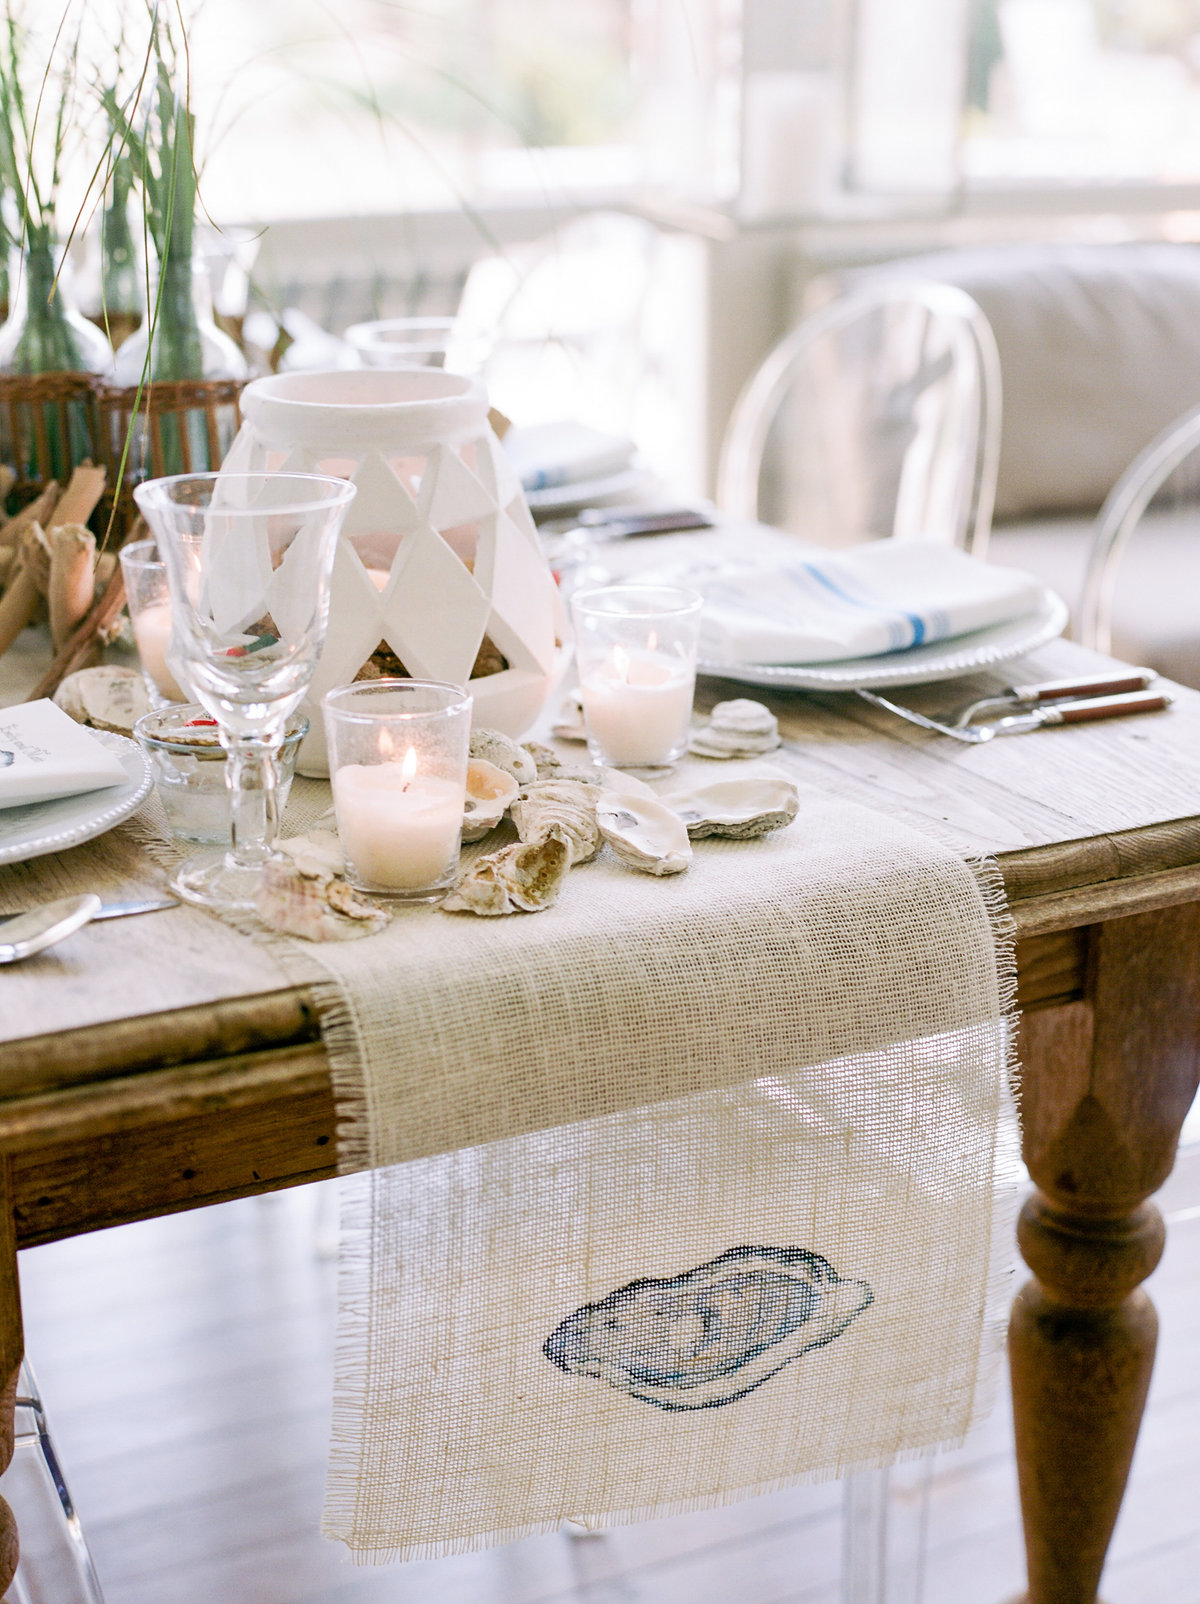 MelissaSchollaert-FrenchTable-44